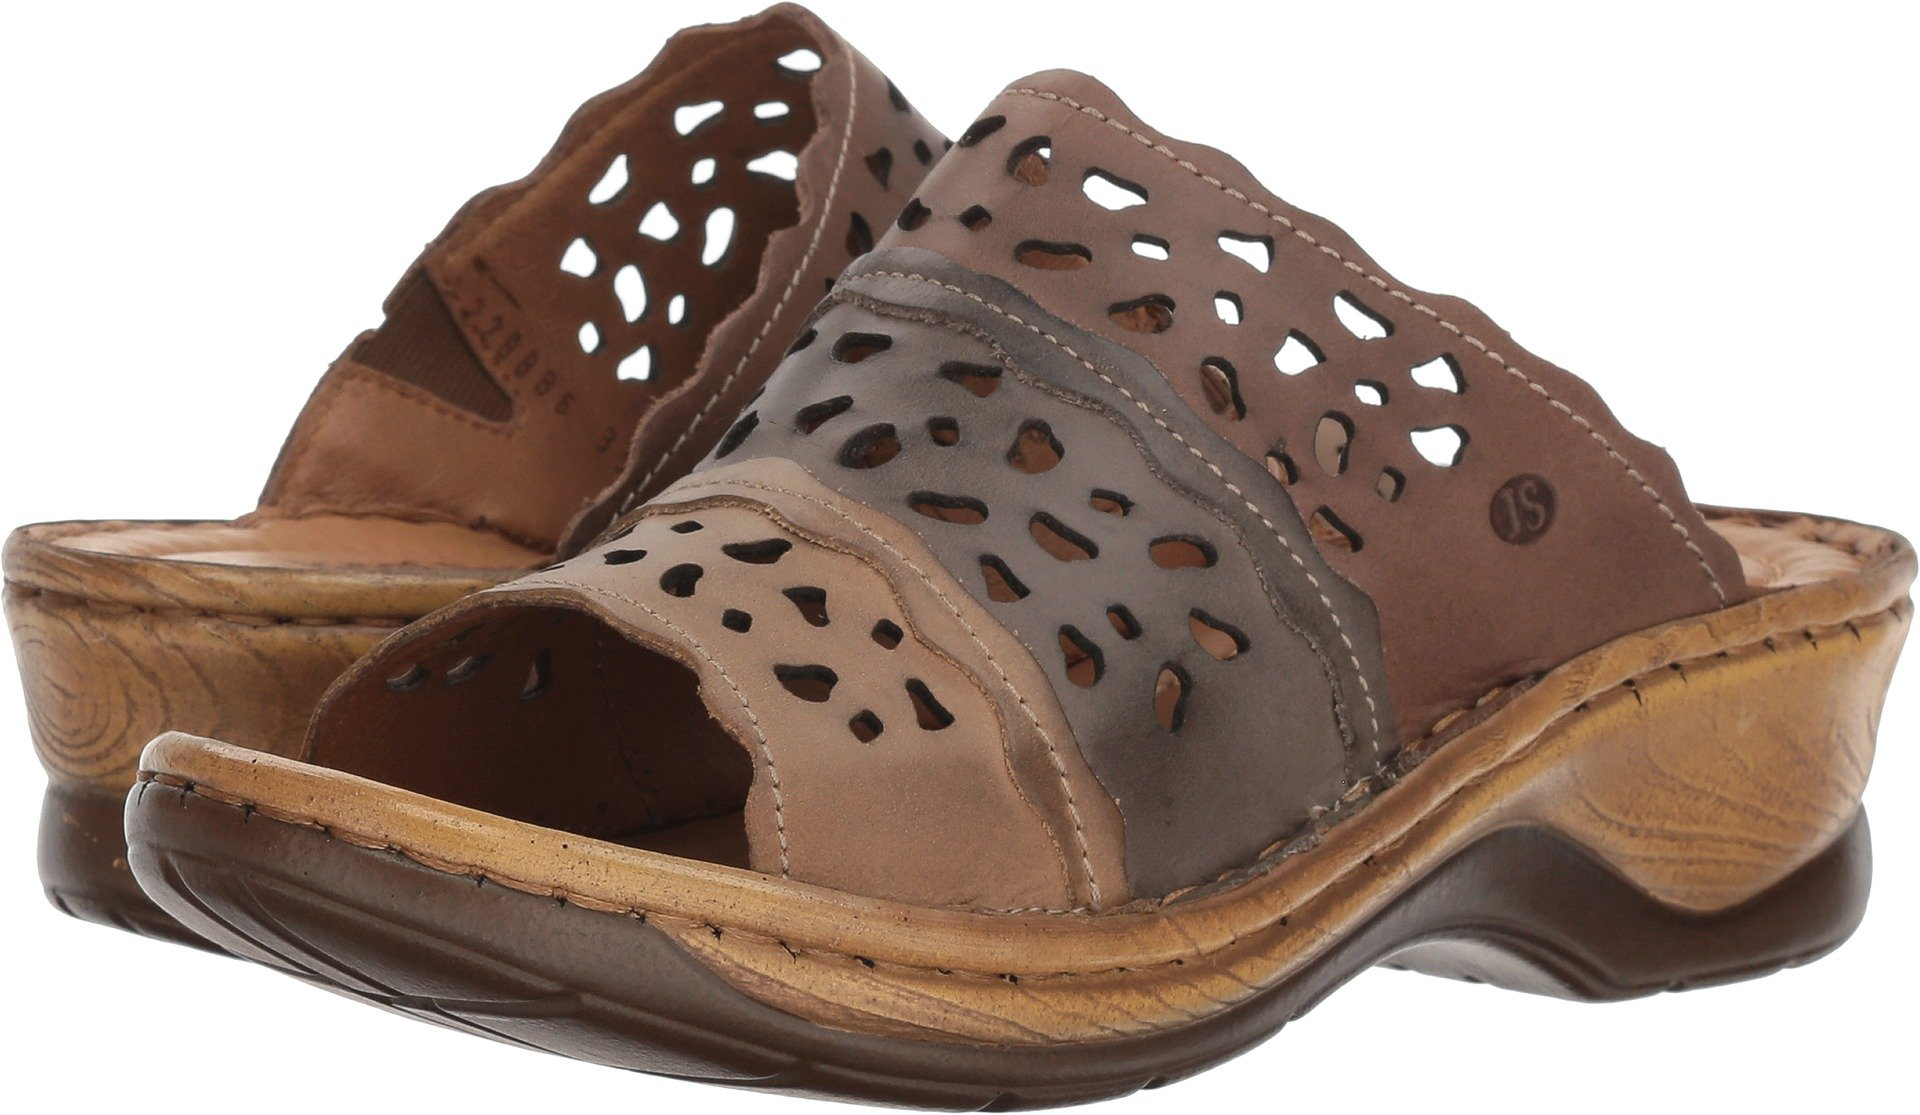 Josef Seibel Women's Catalonia 60 Brown Multi 40 M EU